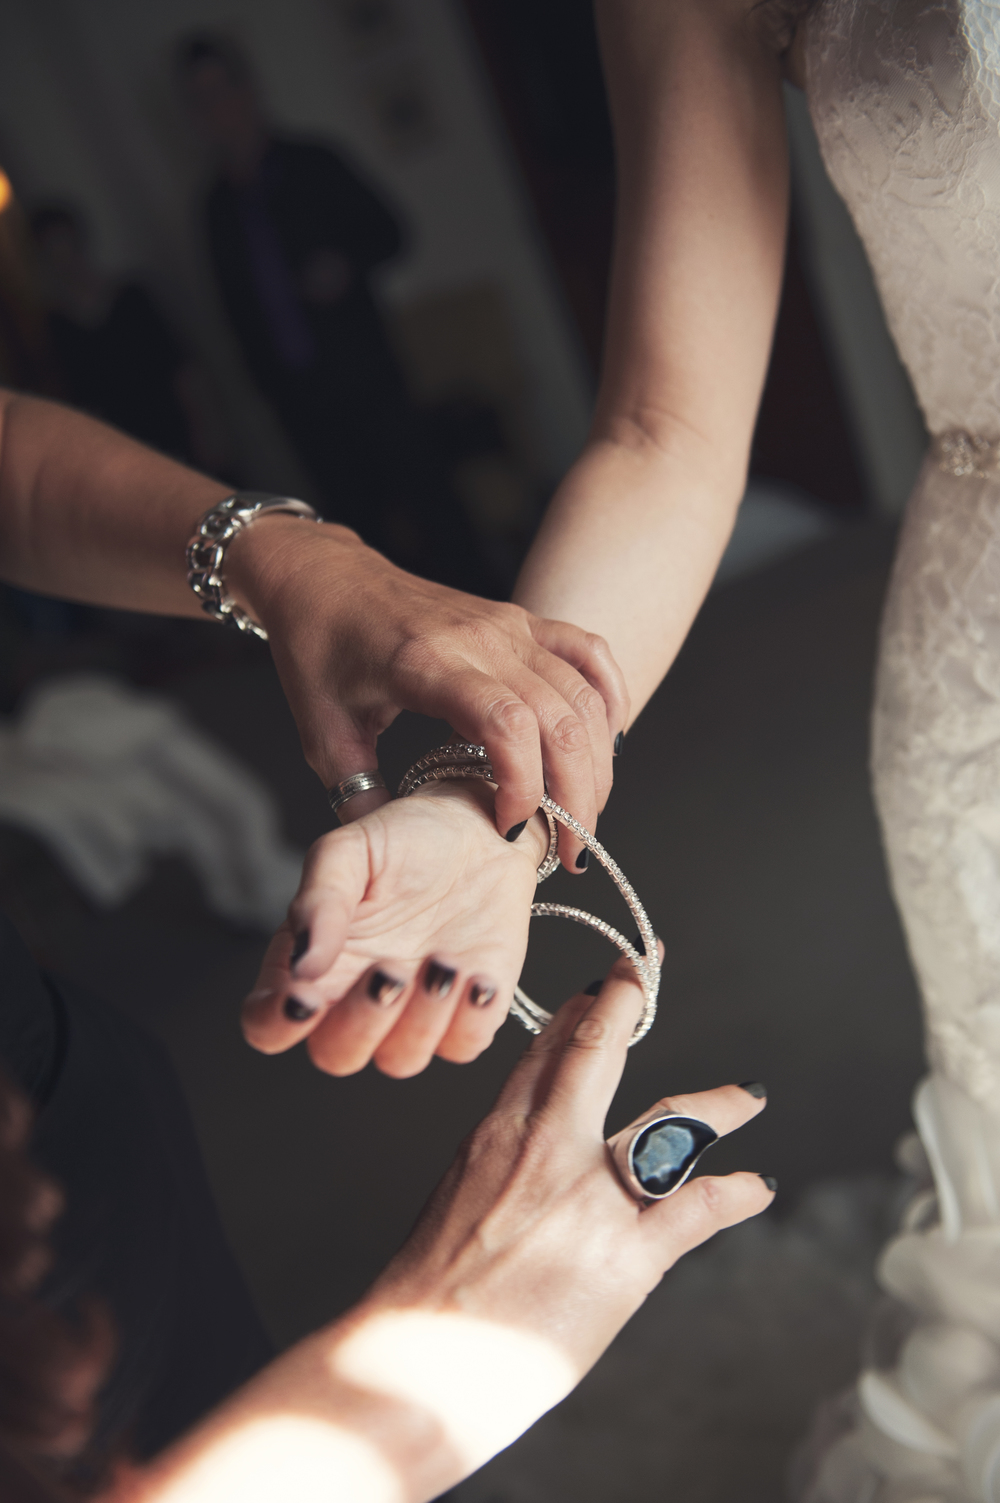 Bridal Bracelet.  Putting on the final touches.    Destination Wedding Planner:   Andrea Eppolito Events   |  Historical Wedding Venue:   The Arizona Inn   |  Photography:  Raylene Streuber